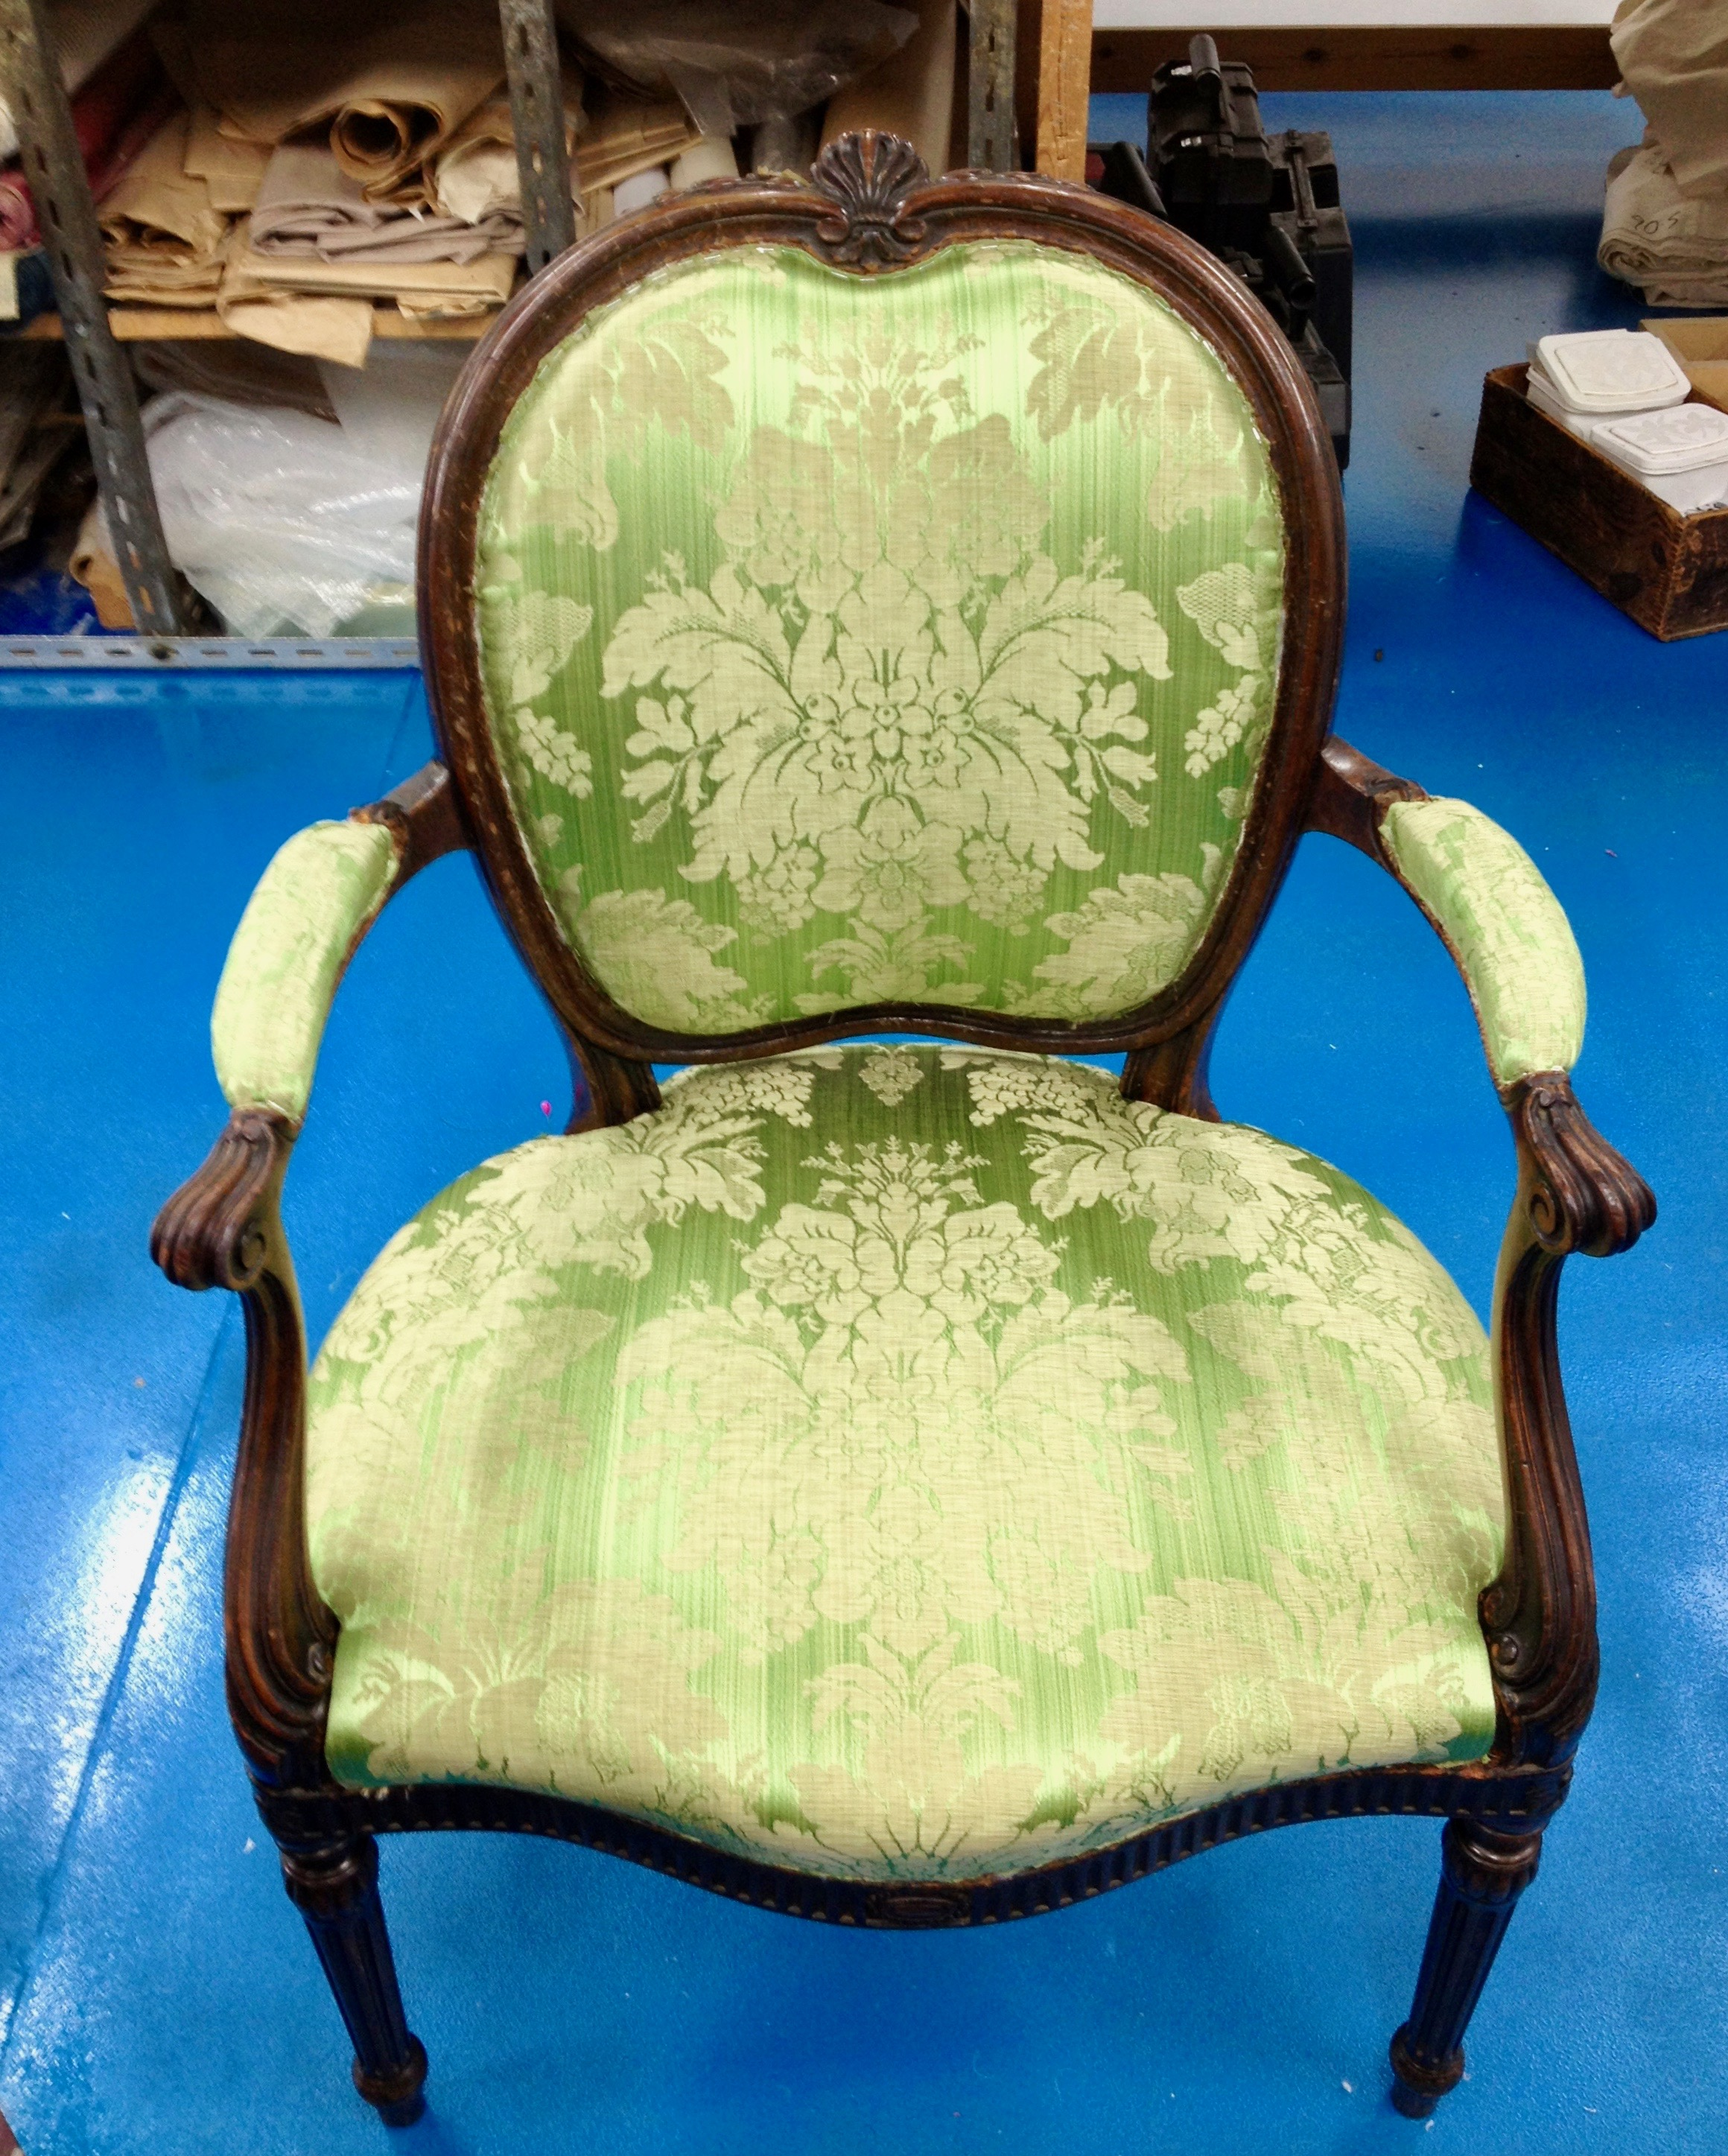 Louis 14th style chair in silk damask. Buckingham Palace.